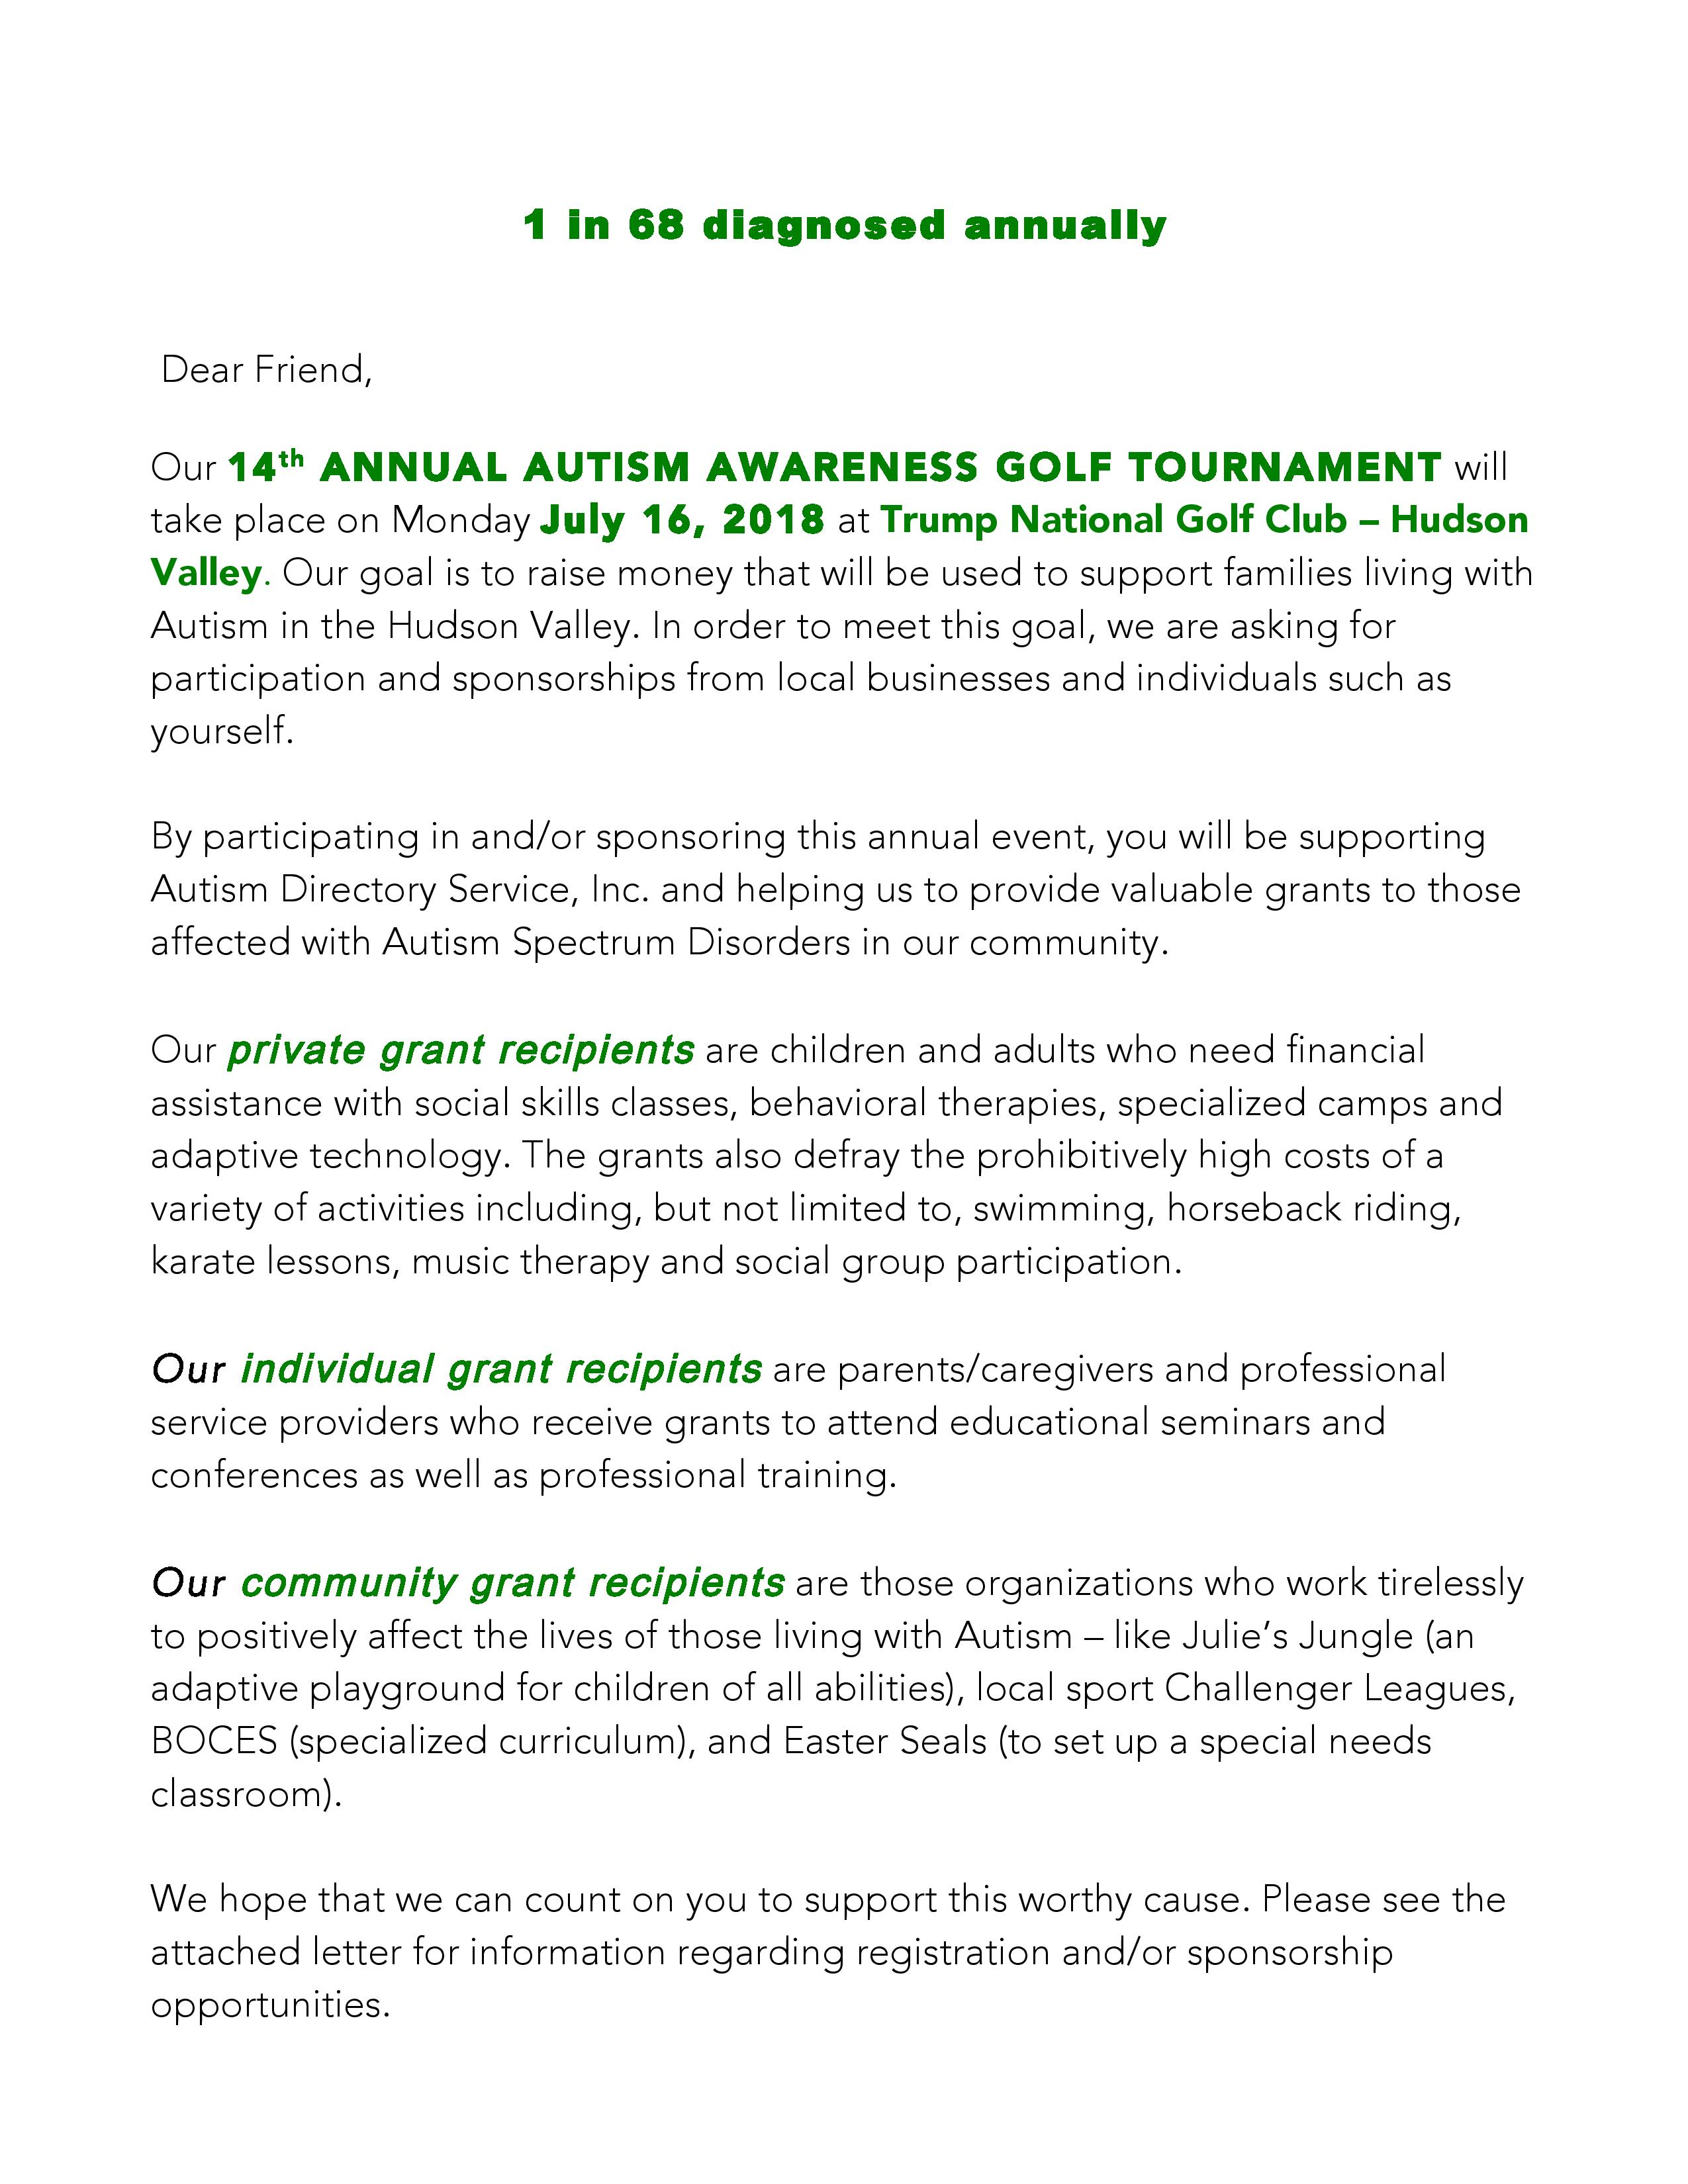 Ads autism directory service for the 14th annual autism awareness golf tournament stopboris Gallery